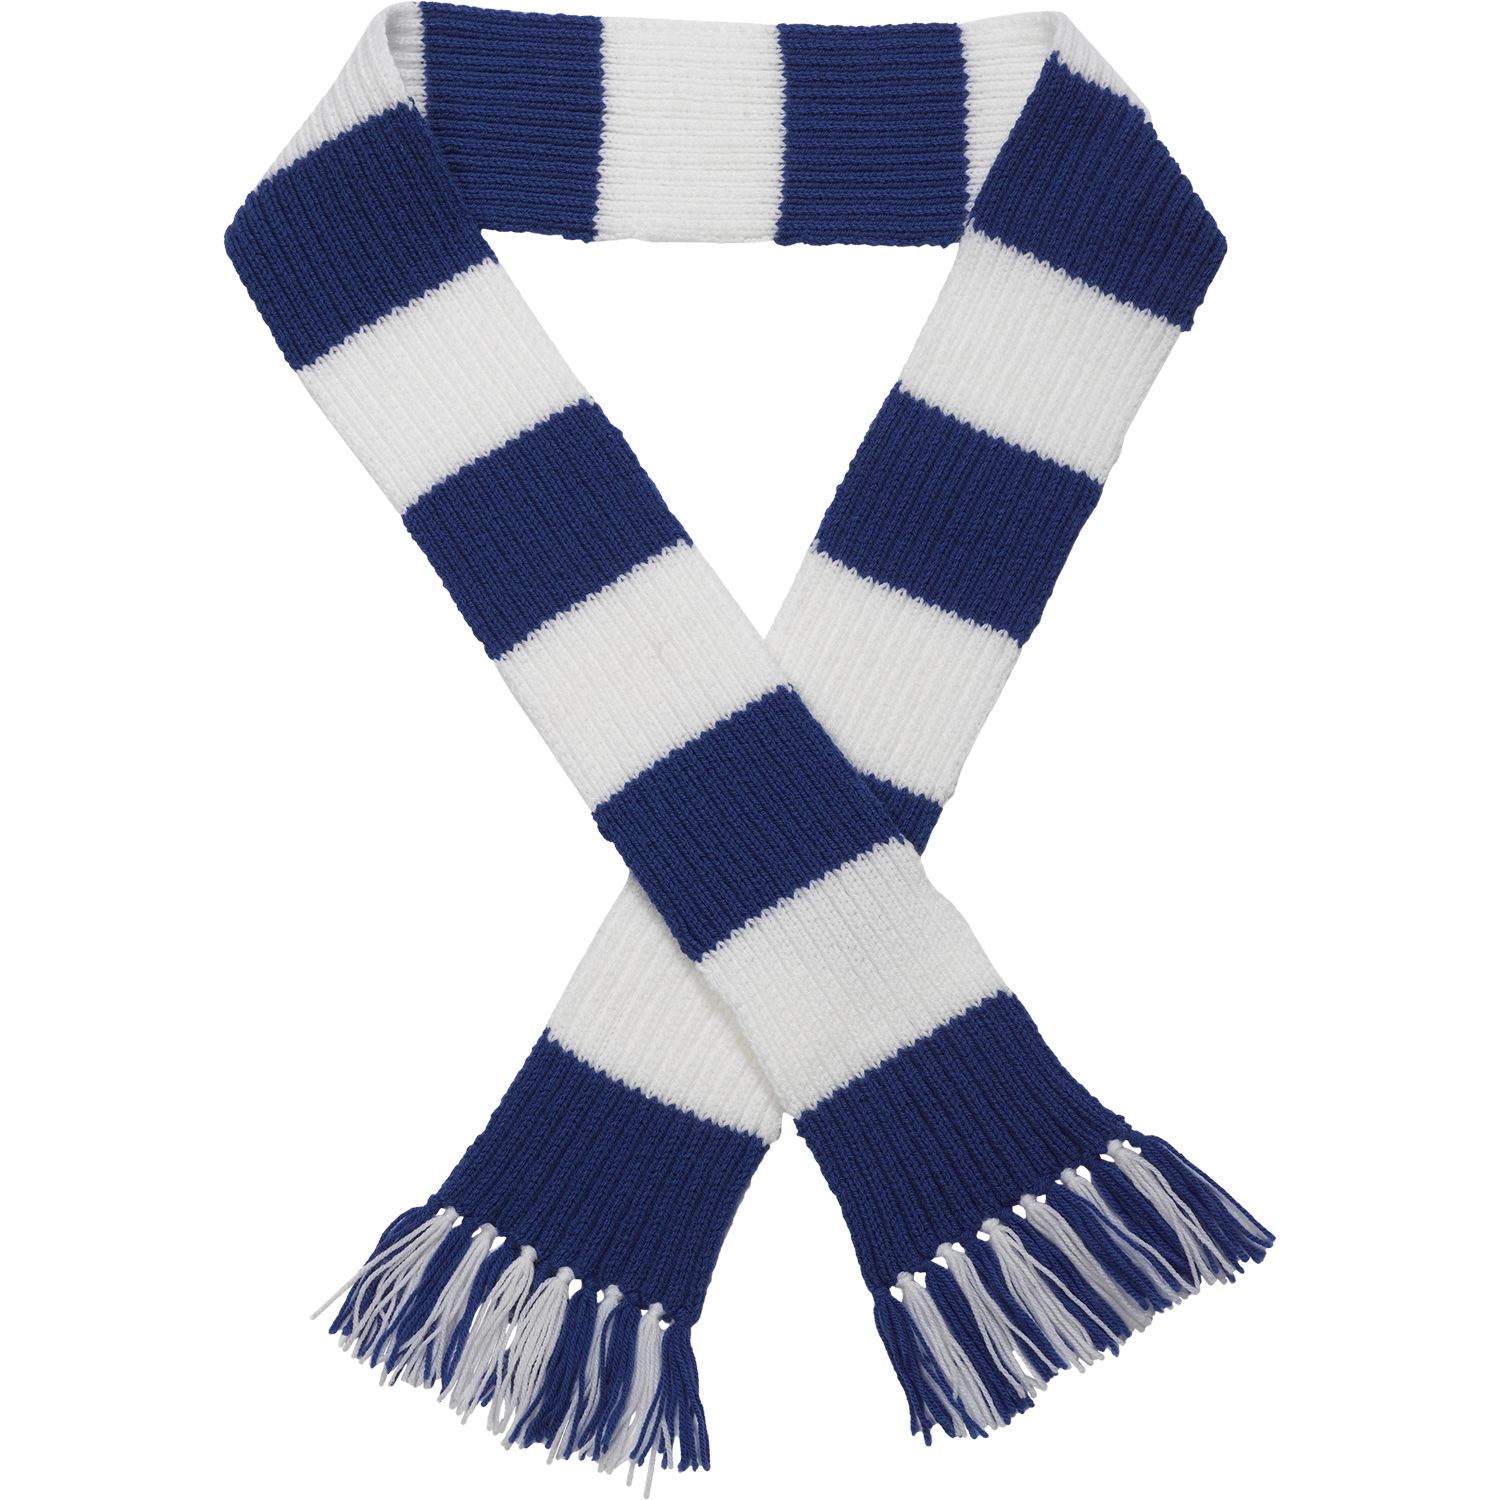 Details about Craft Hobby Knitted Scarf Kit Football & Rugby DK Double Knitting Pattern & Wool